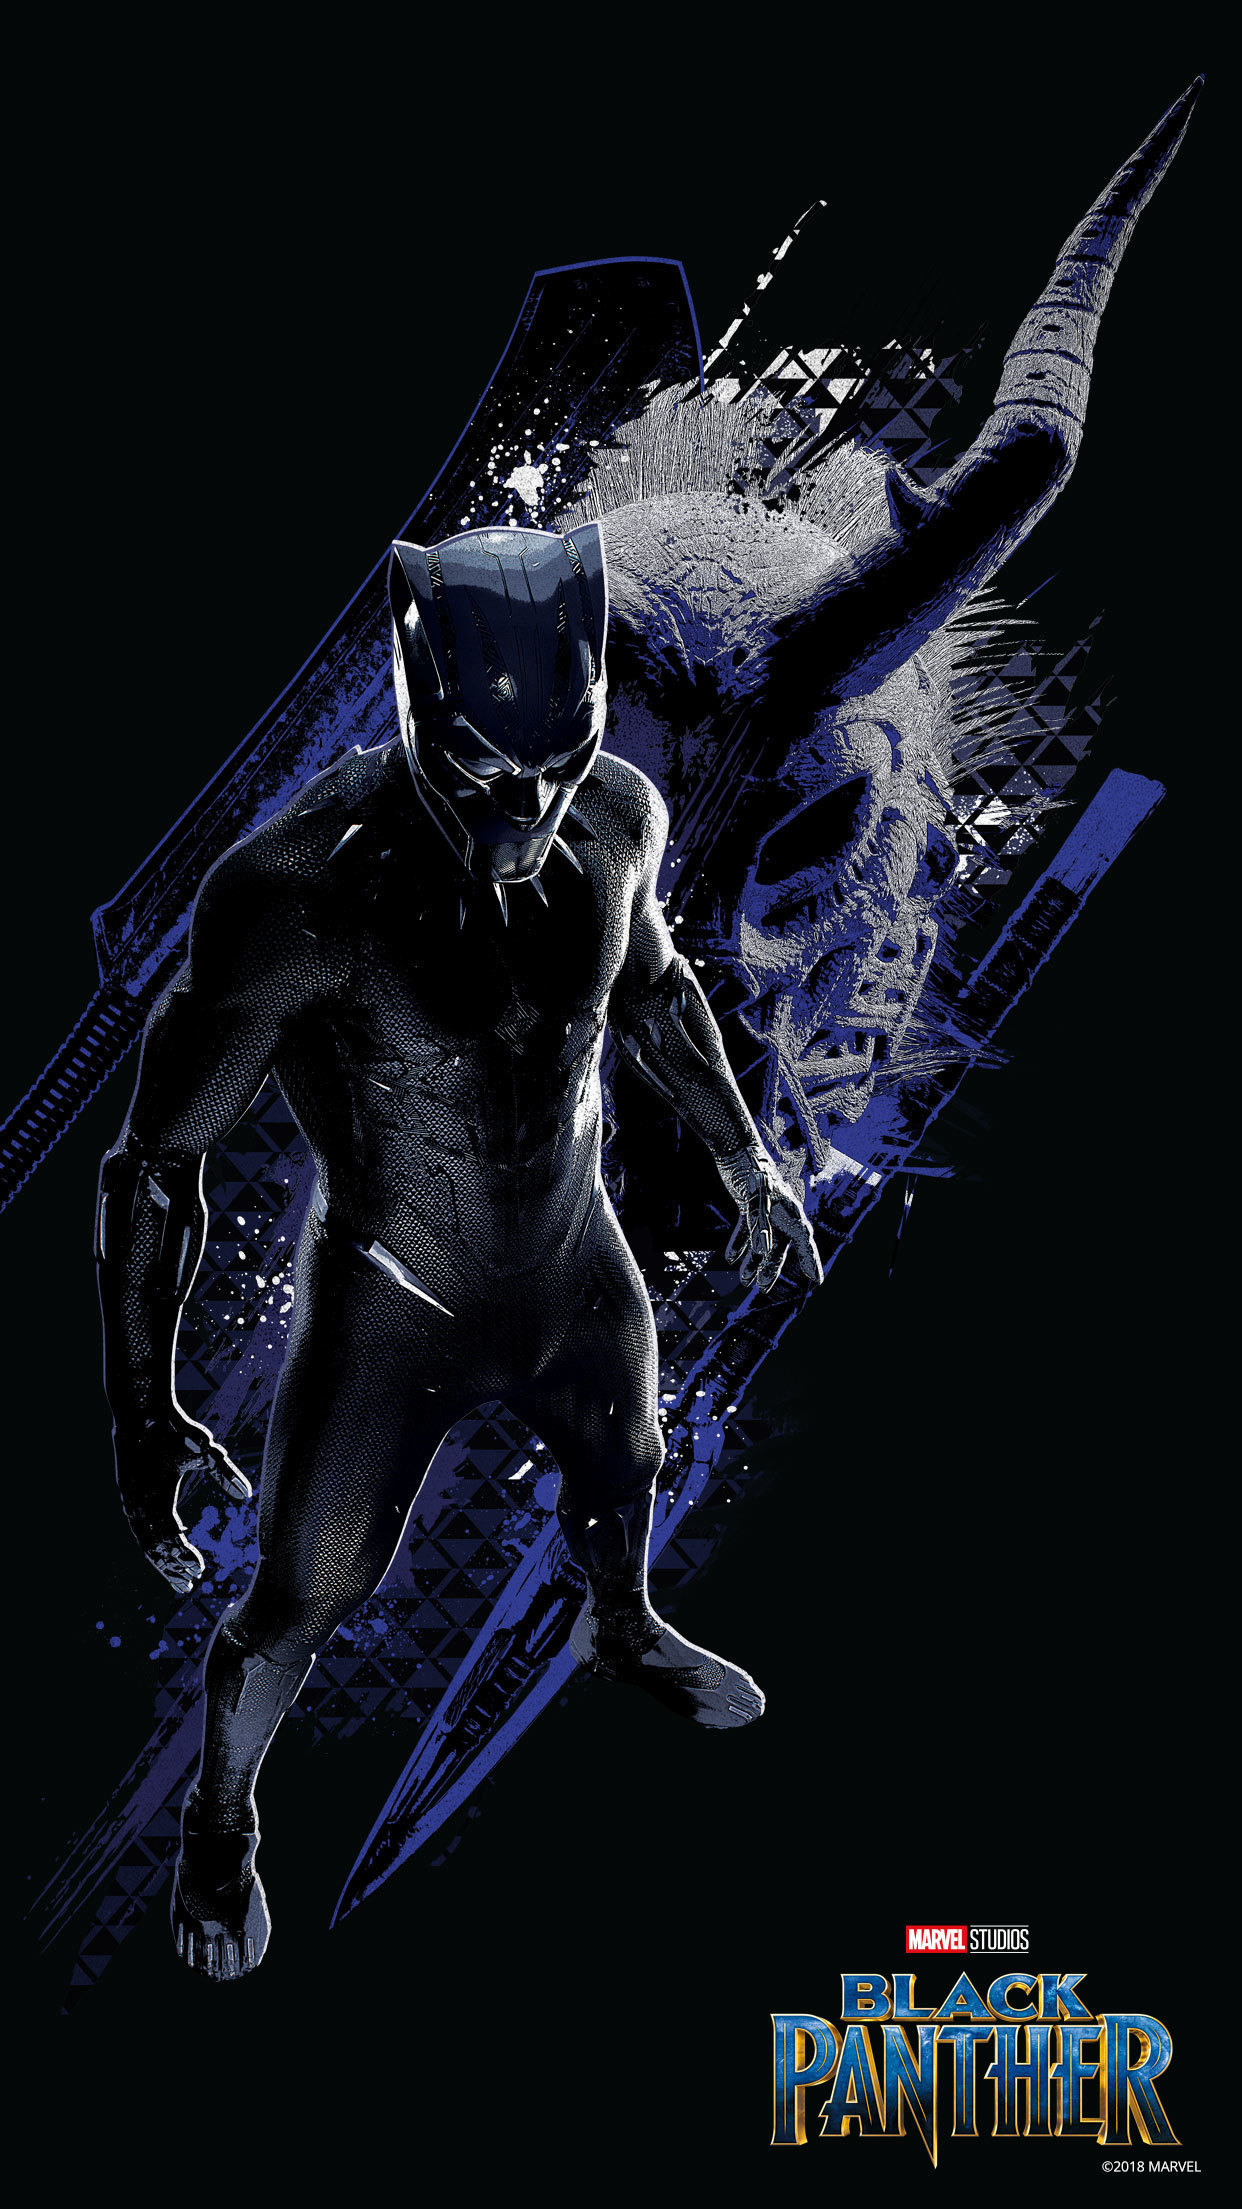 Black Panther Mobile Wallpapers Disney Movies Singapore